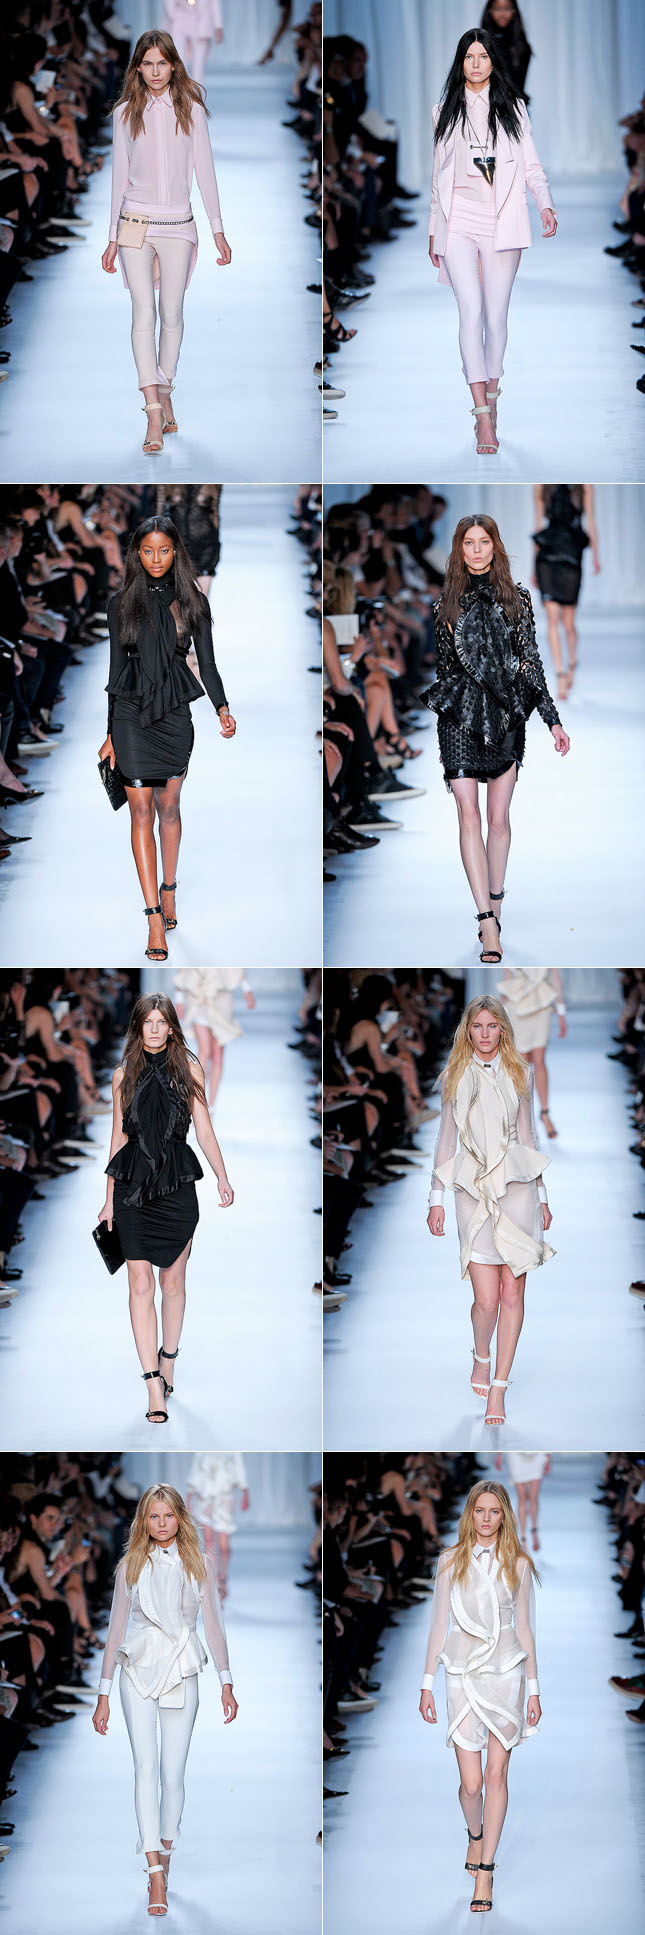 Givenchy Desfile Verão 2012 Paris Fashion Week PFW